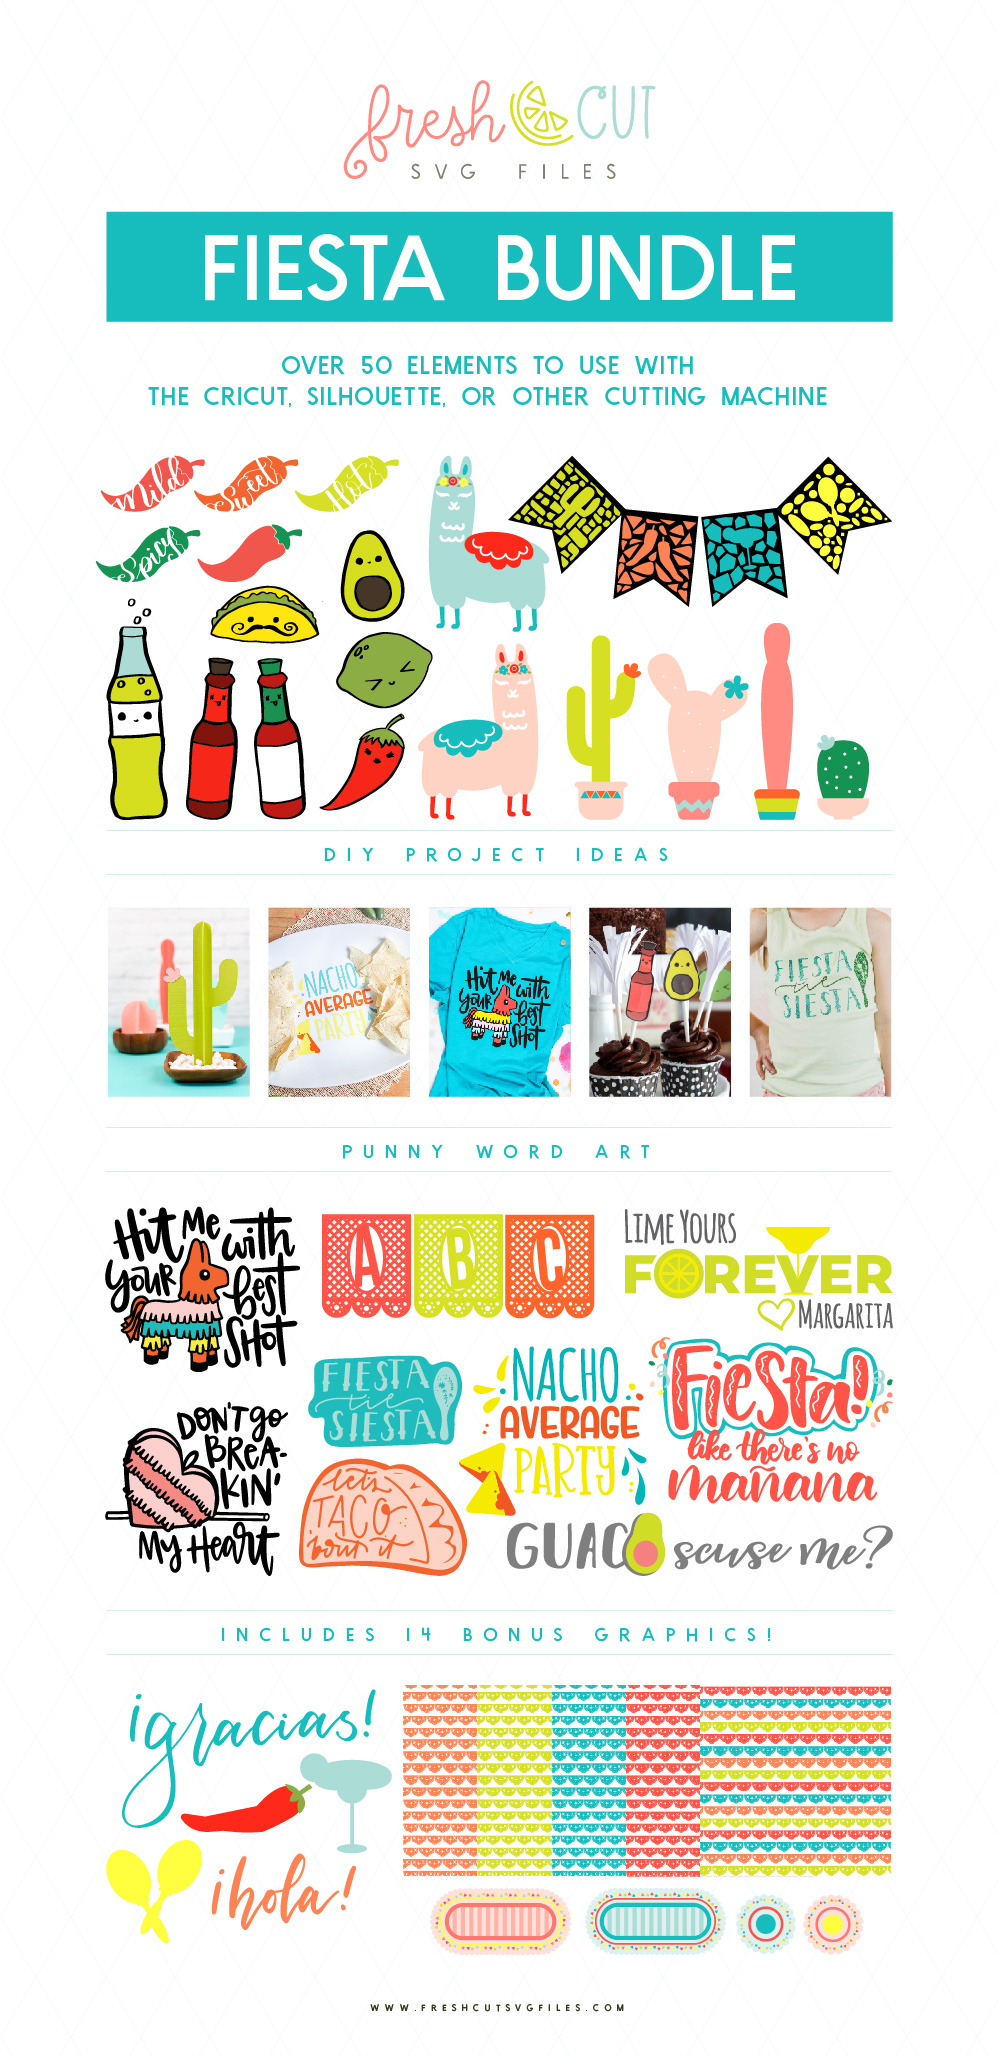 Fiesta SVG Files includes llamas, hand lettered fiesta quotes, pinatas, papel picado banners, and more!